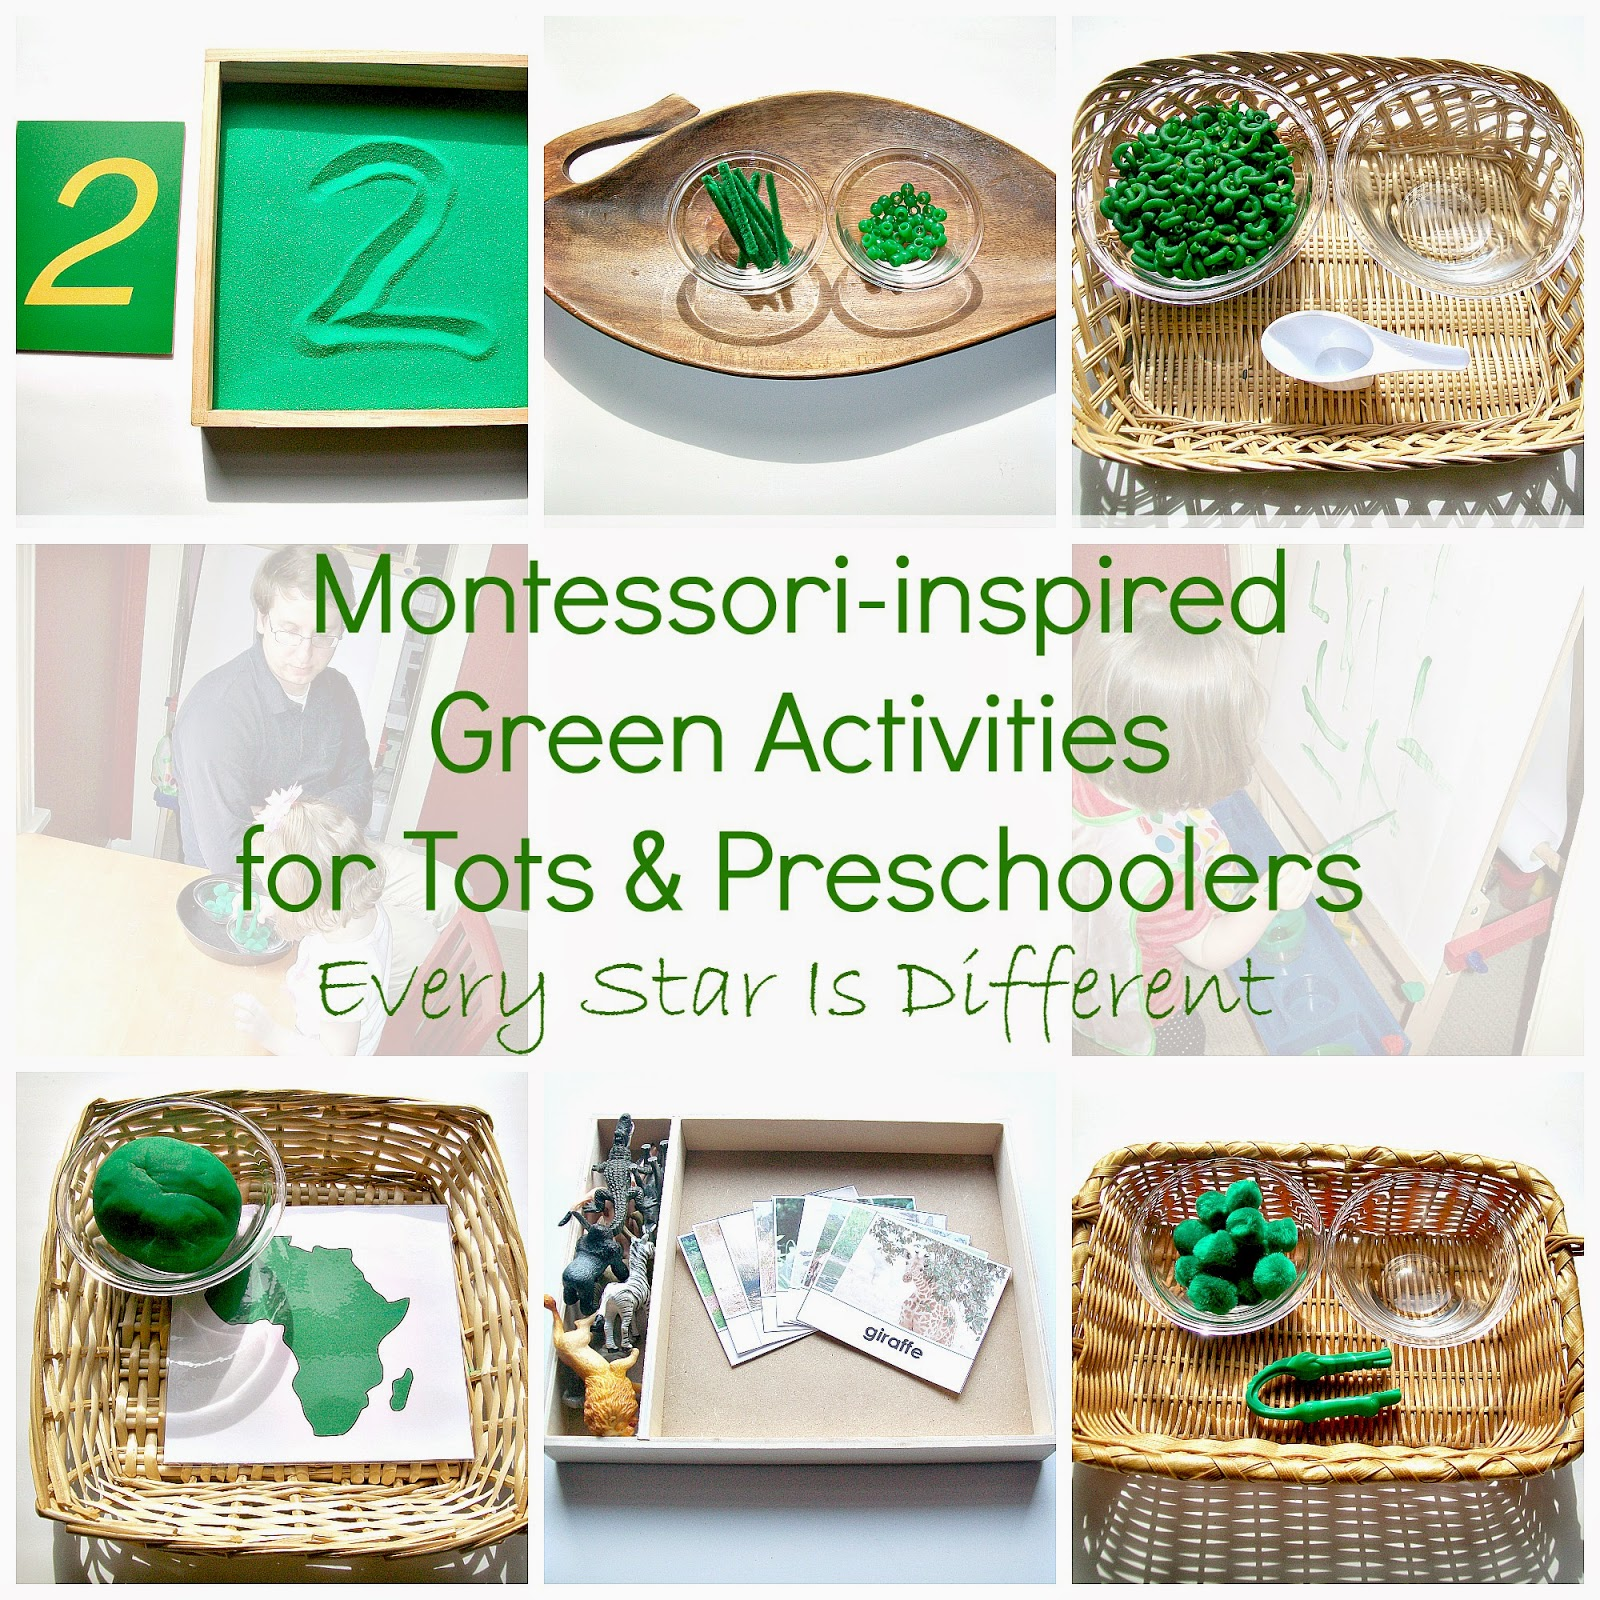 Montessori-inspired Green Activities for Tots & Preschoolers